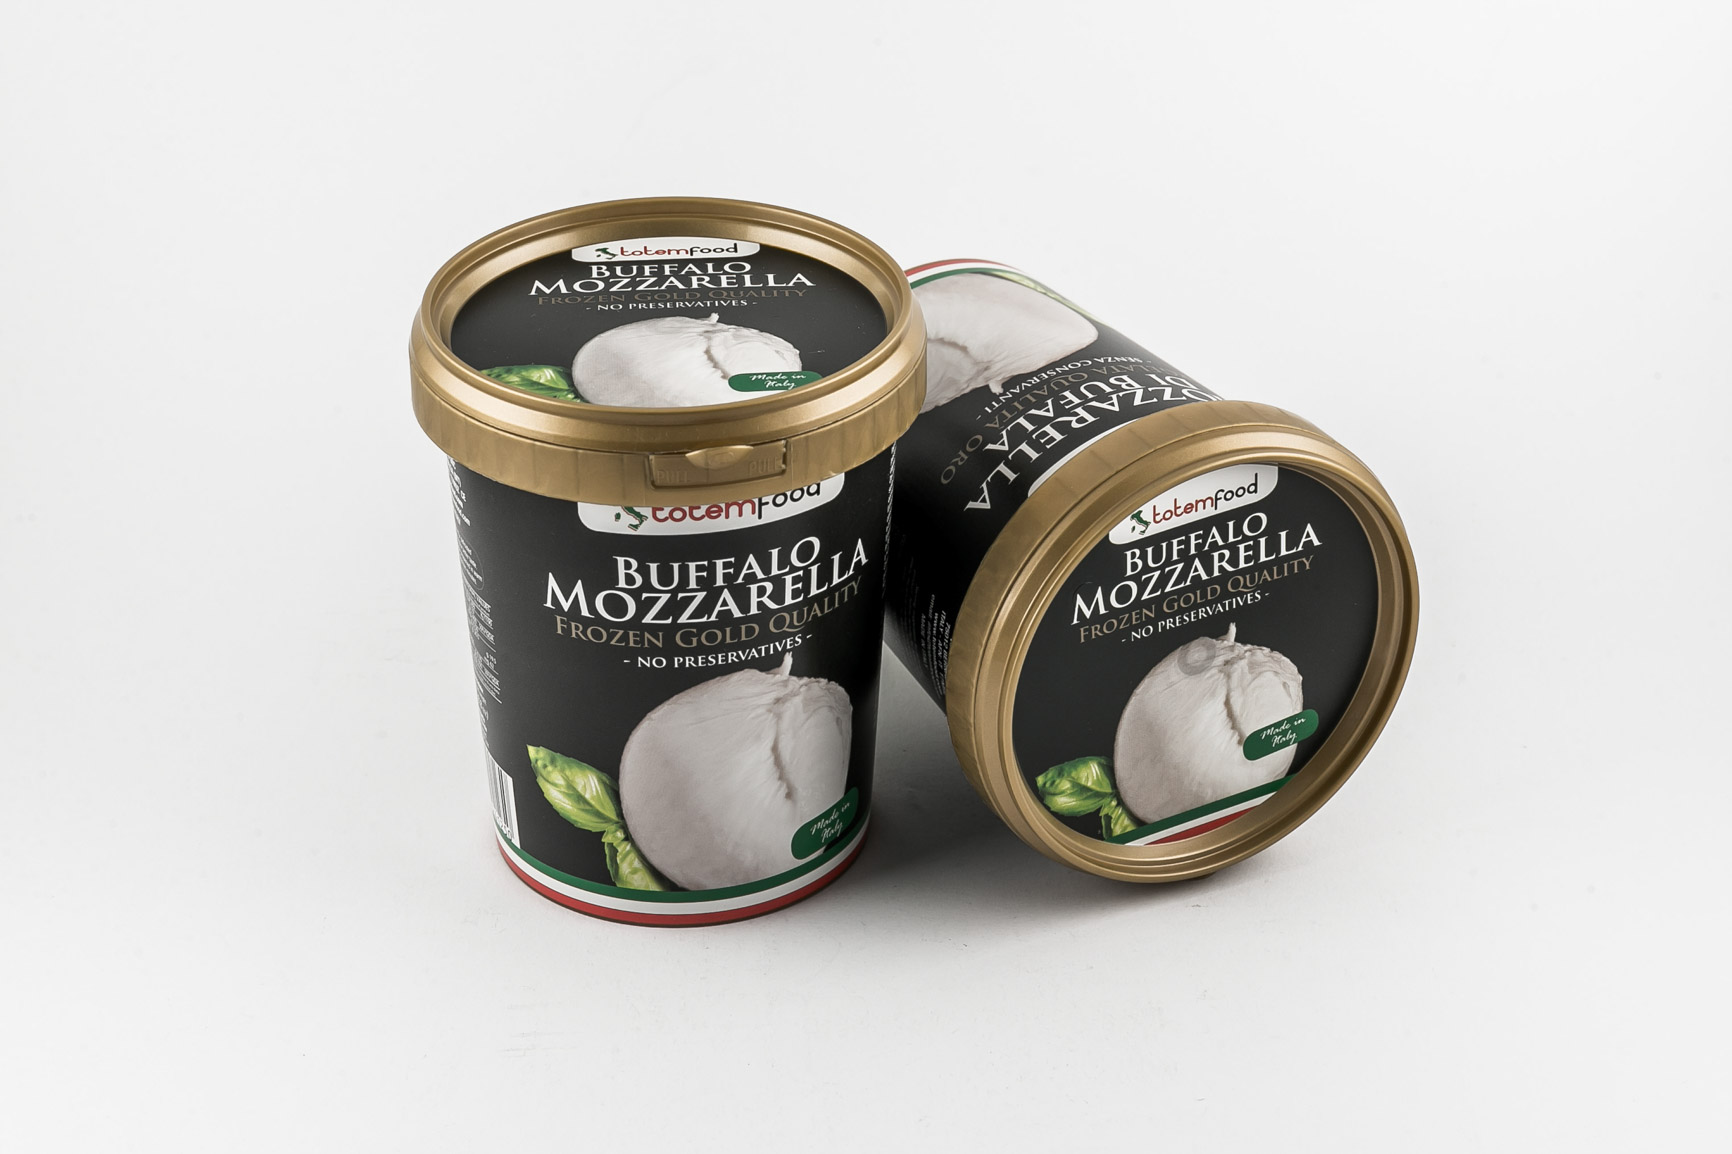 Frozen Buffalo Mozzarella - Bucket 250 gr.